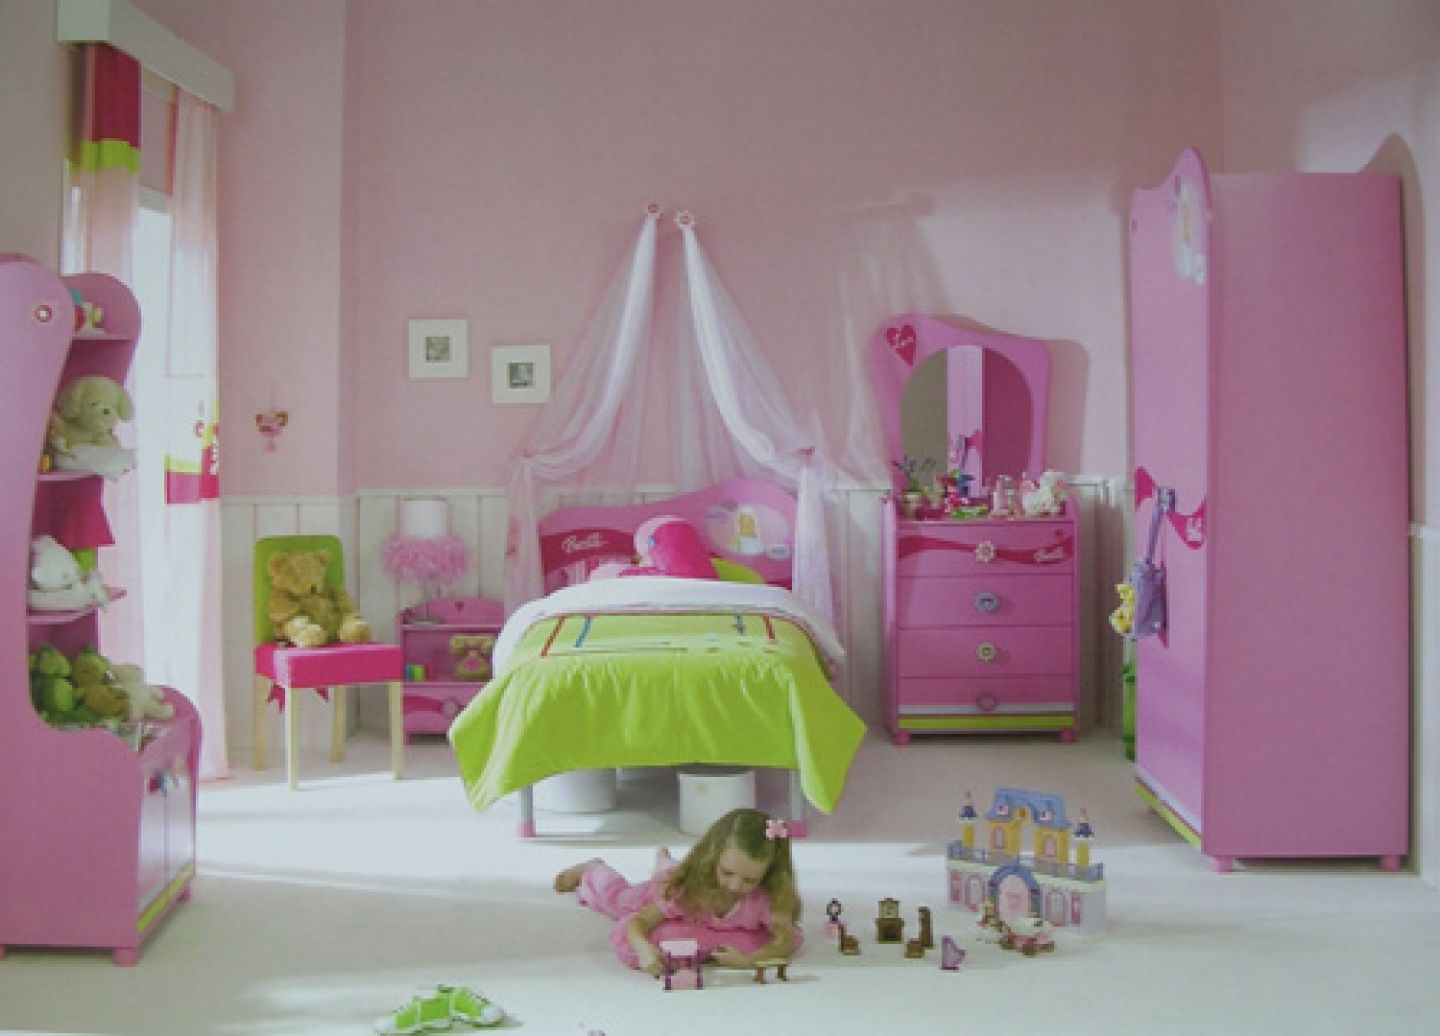 Bedroom designs for boys and girls - Kids Bedroom Ideas Kids Bedroom Pinky Decoration Inspiration Girls Bedroom Sets Decorating Ideas For Little